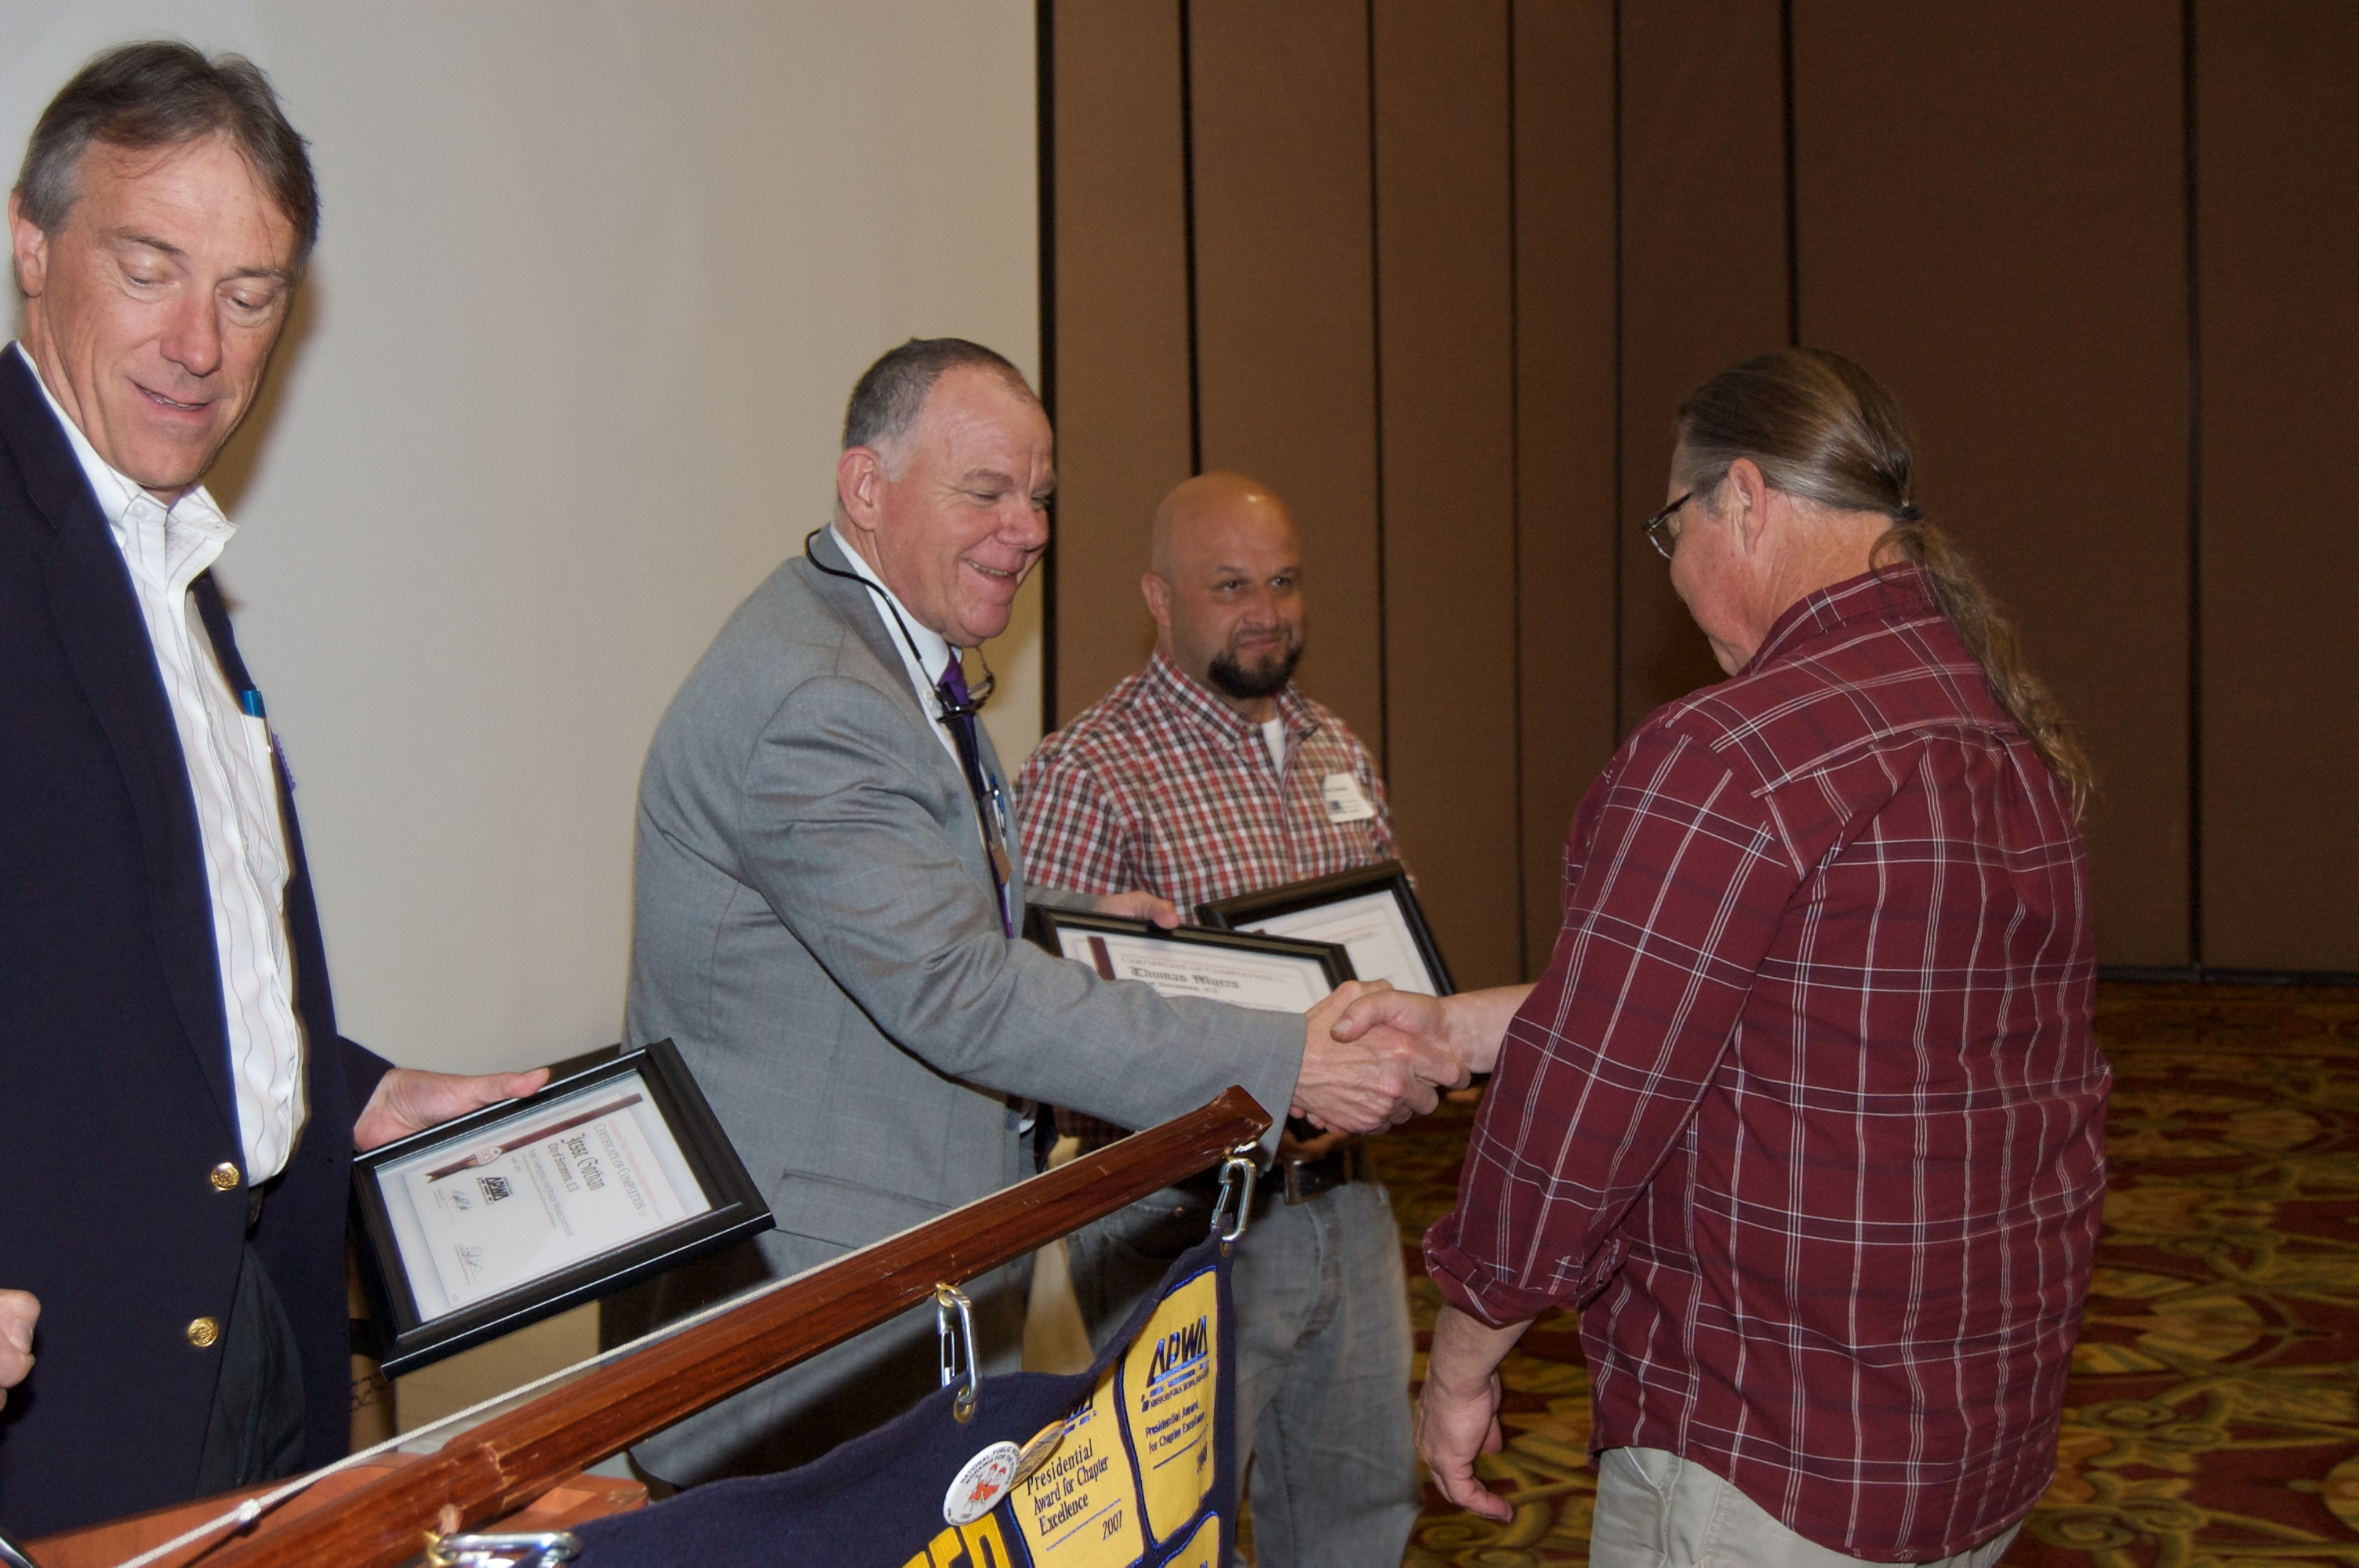 APWA April 2016, PWI and Past Presidents 6.jpg